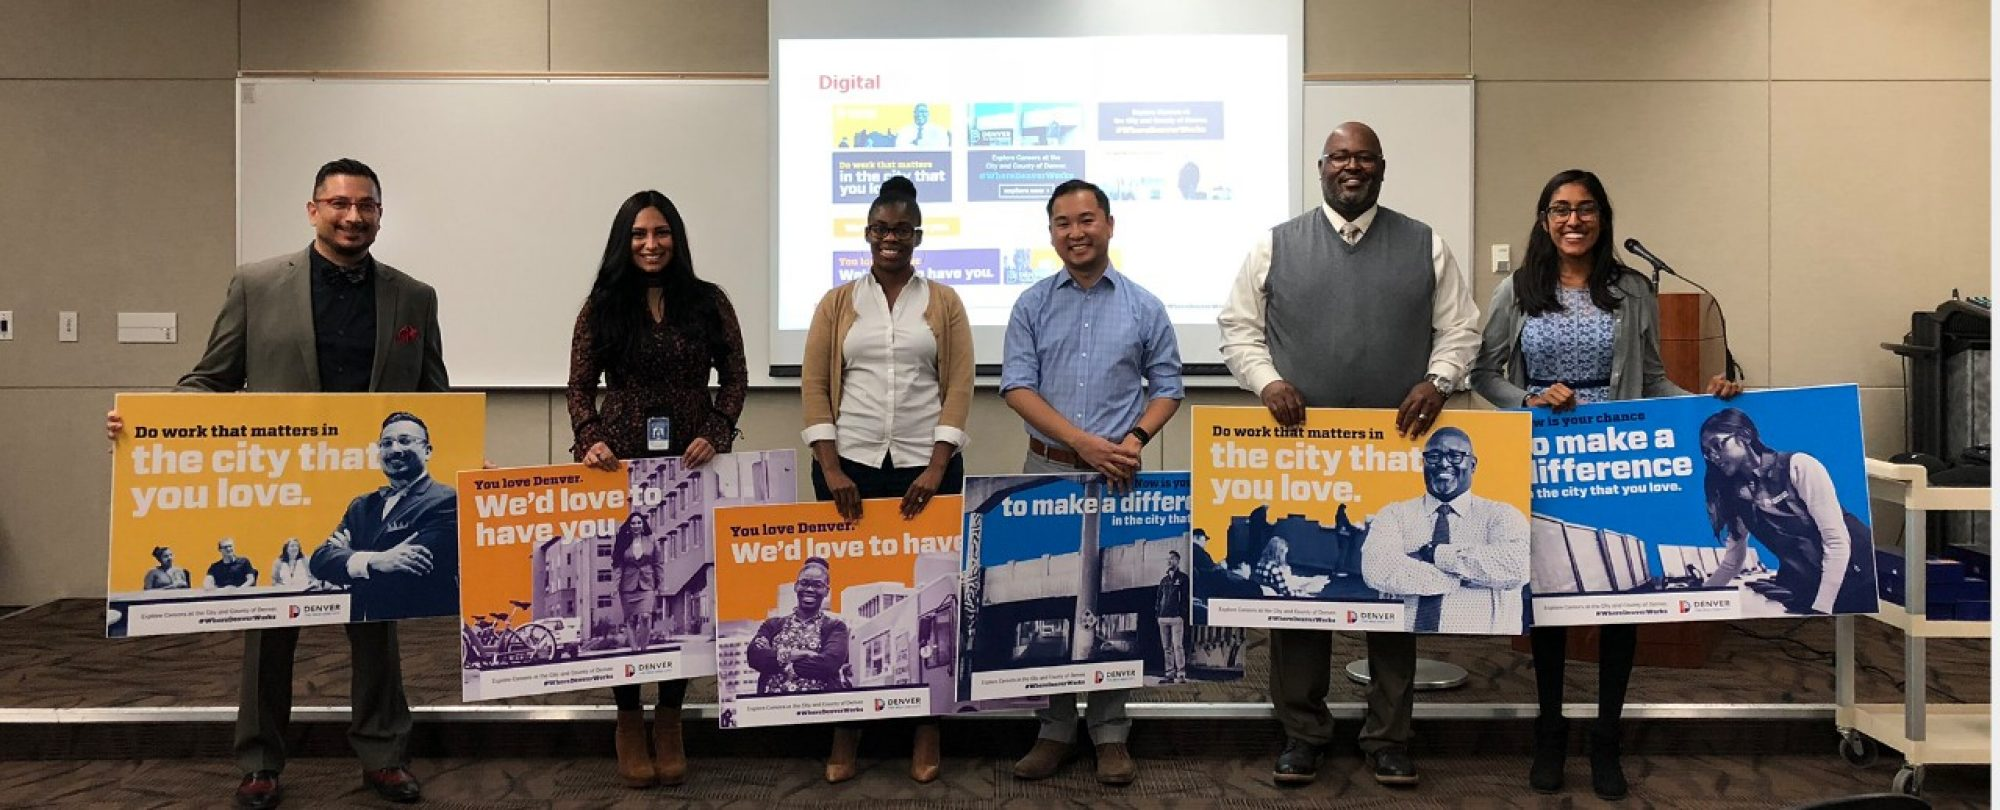 Project Denver Delivers Honorees: Employees Working